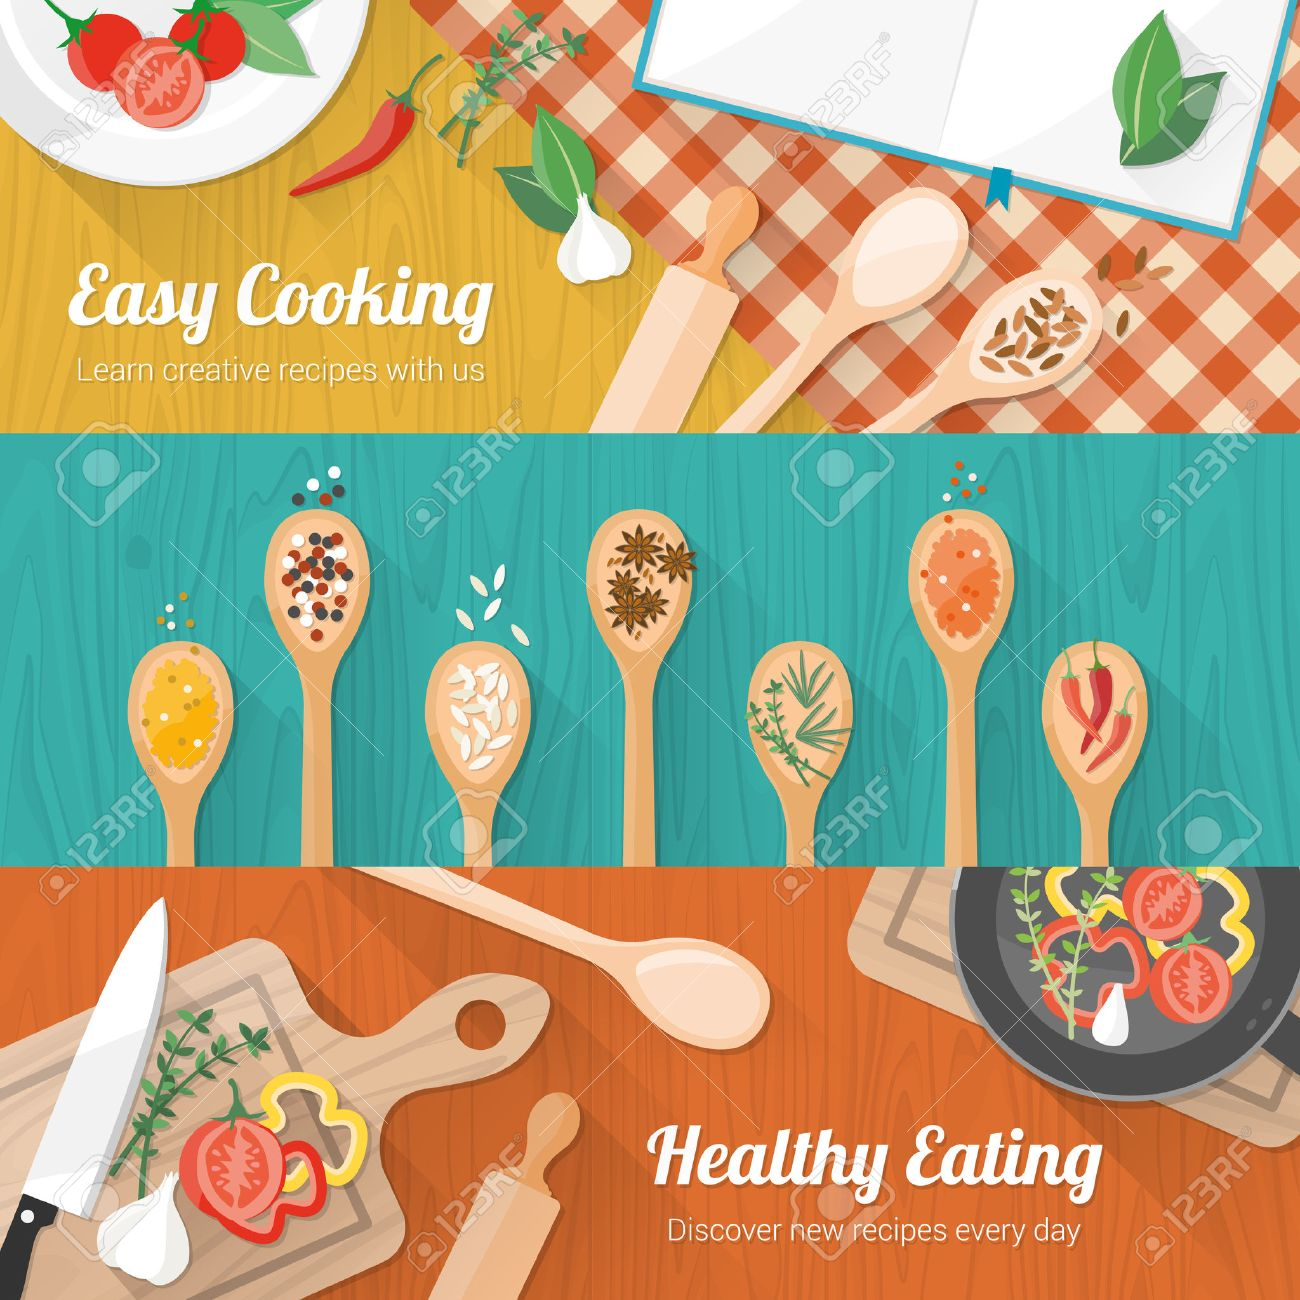 Food and cooking banner set with kitchenware utensils, spices and vegetables on wooden table worktop - 37571355